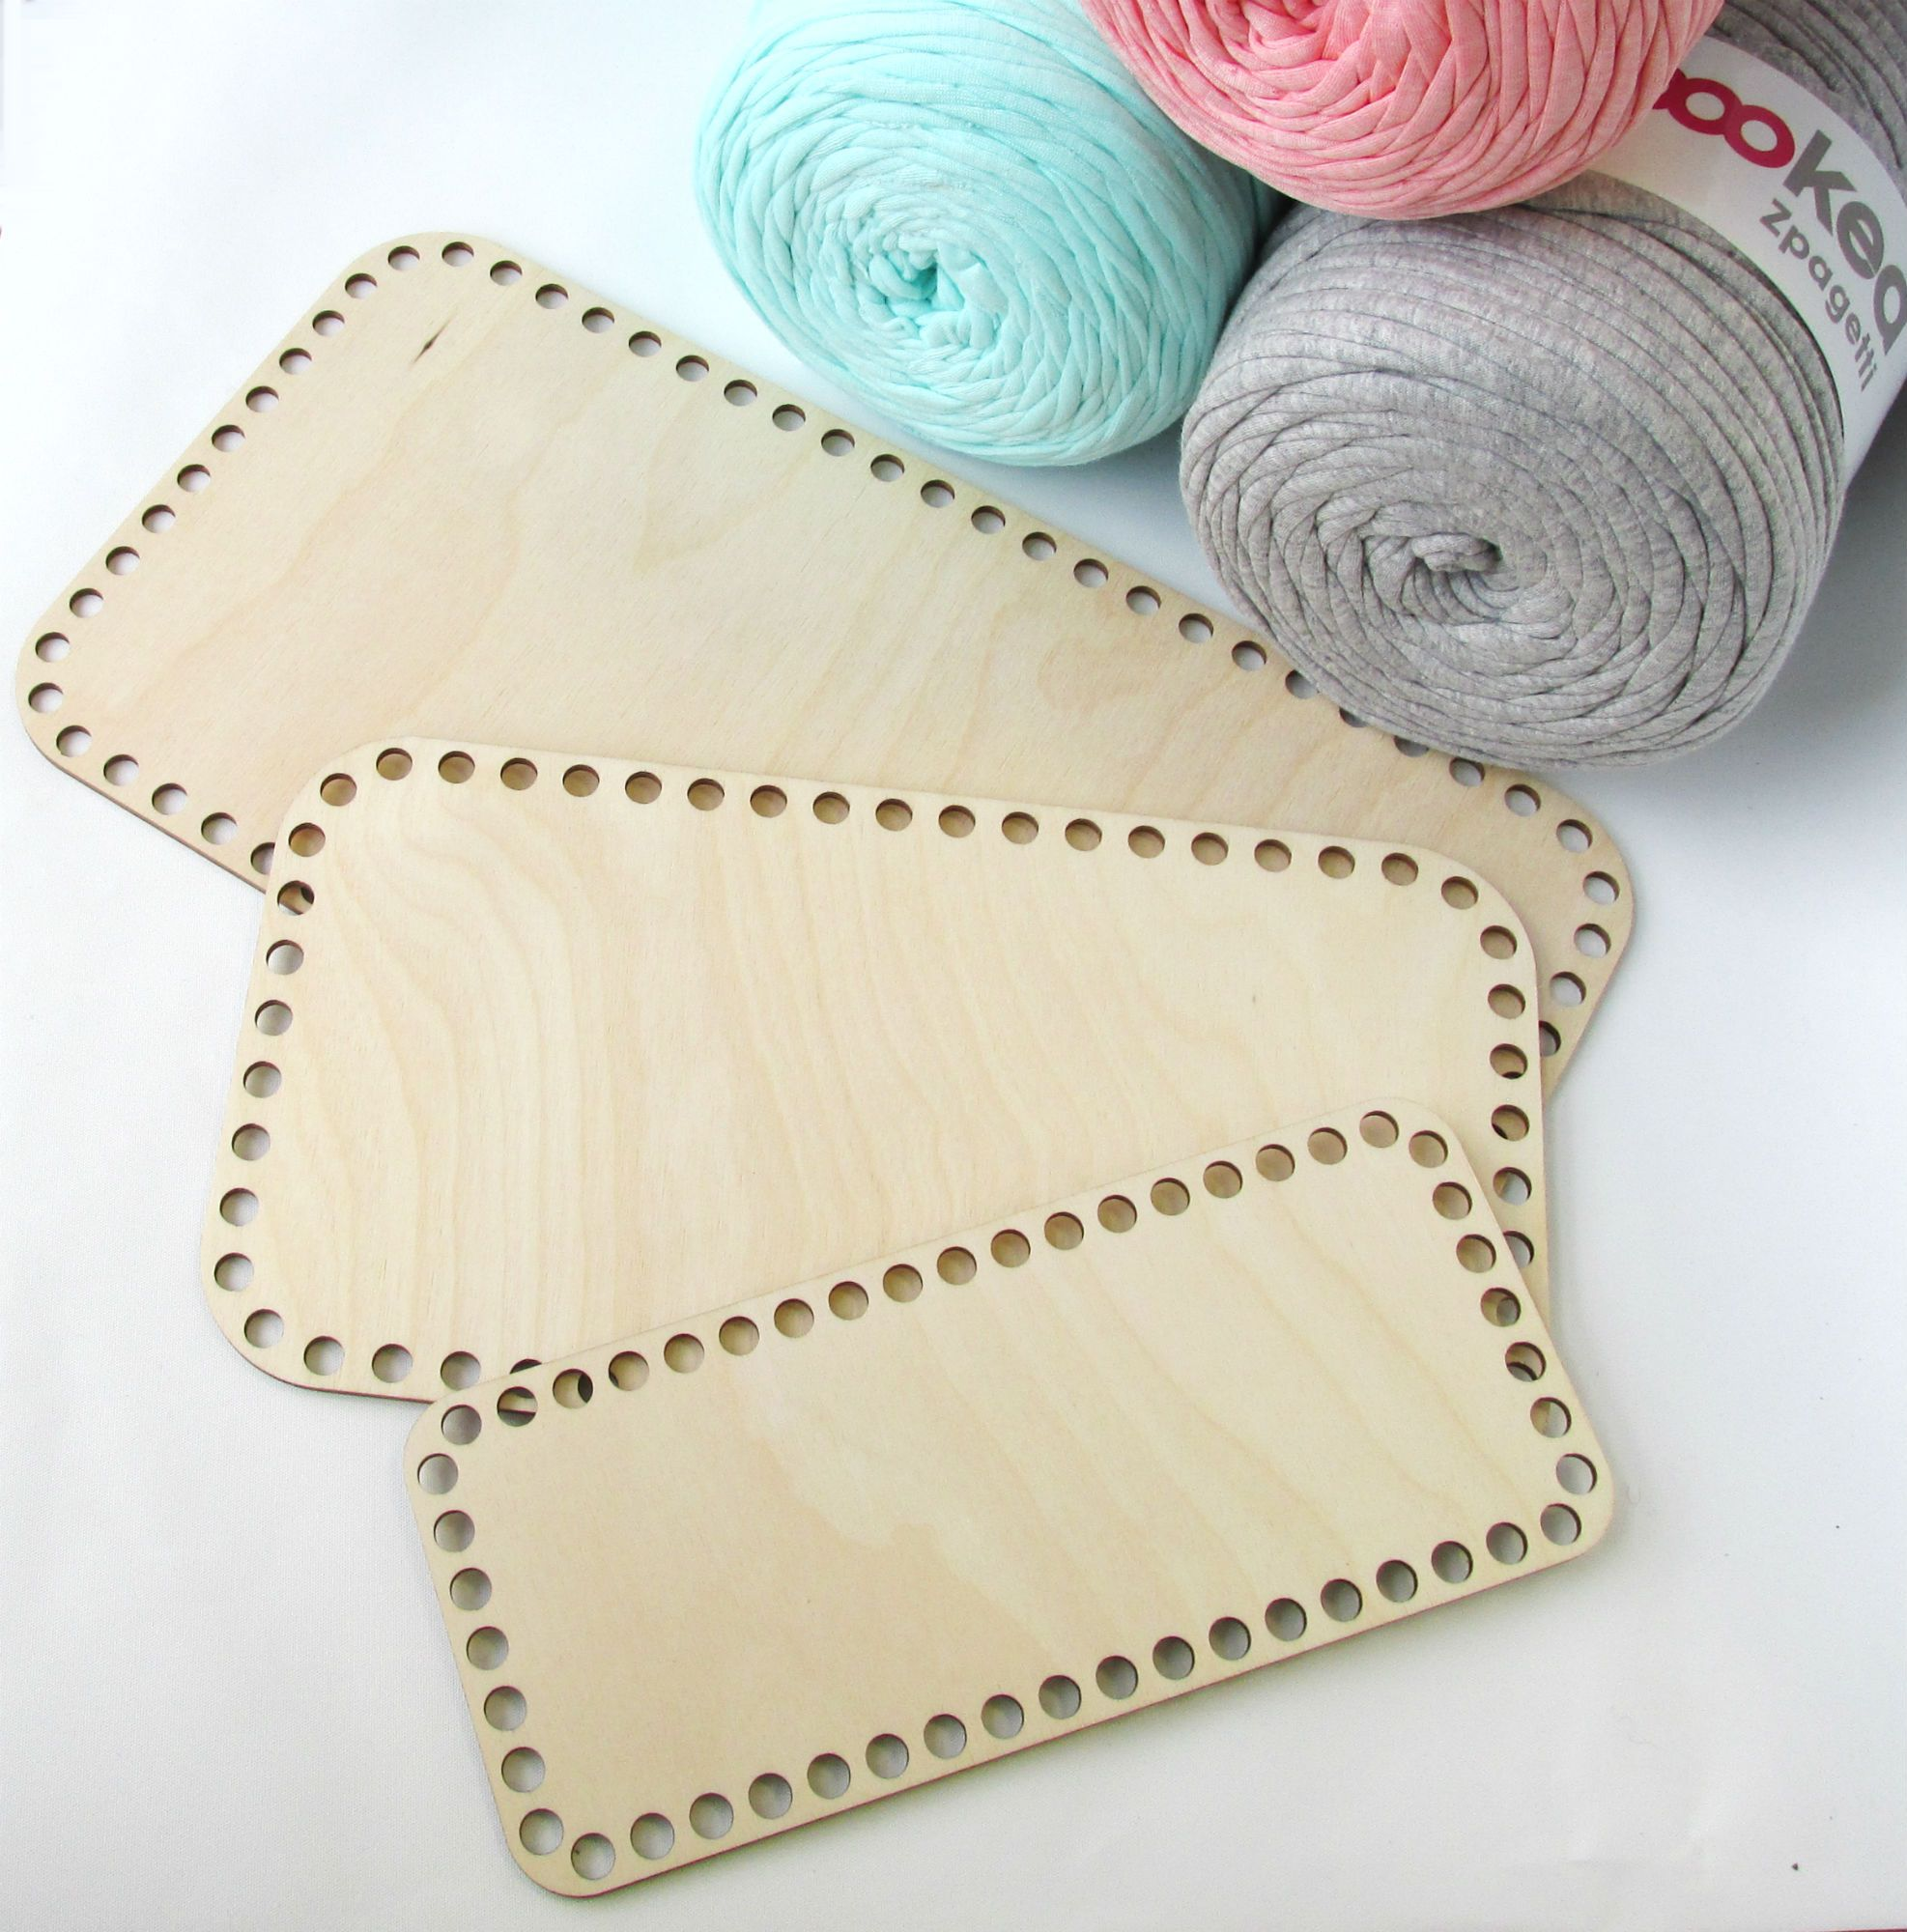 Laser Cut Wooden Bases For Crochet Baskets Free Vector